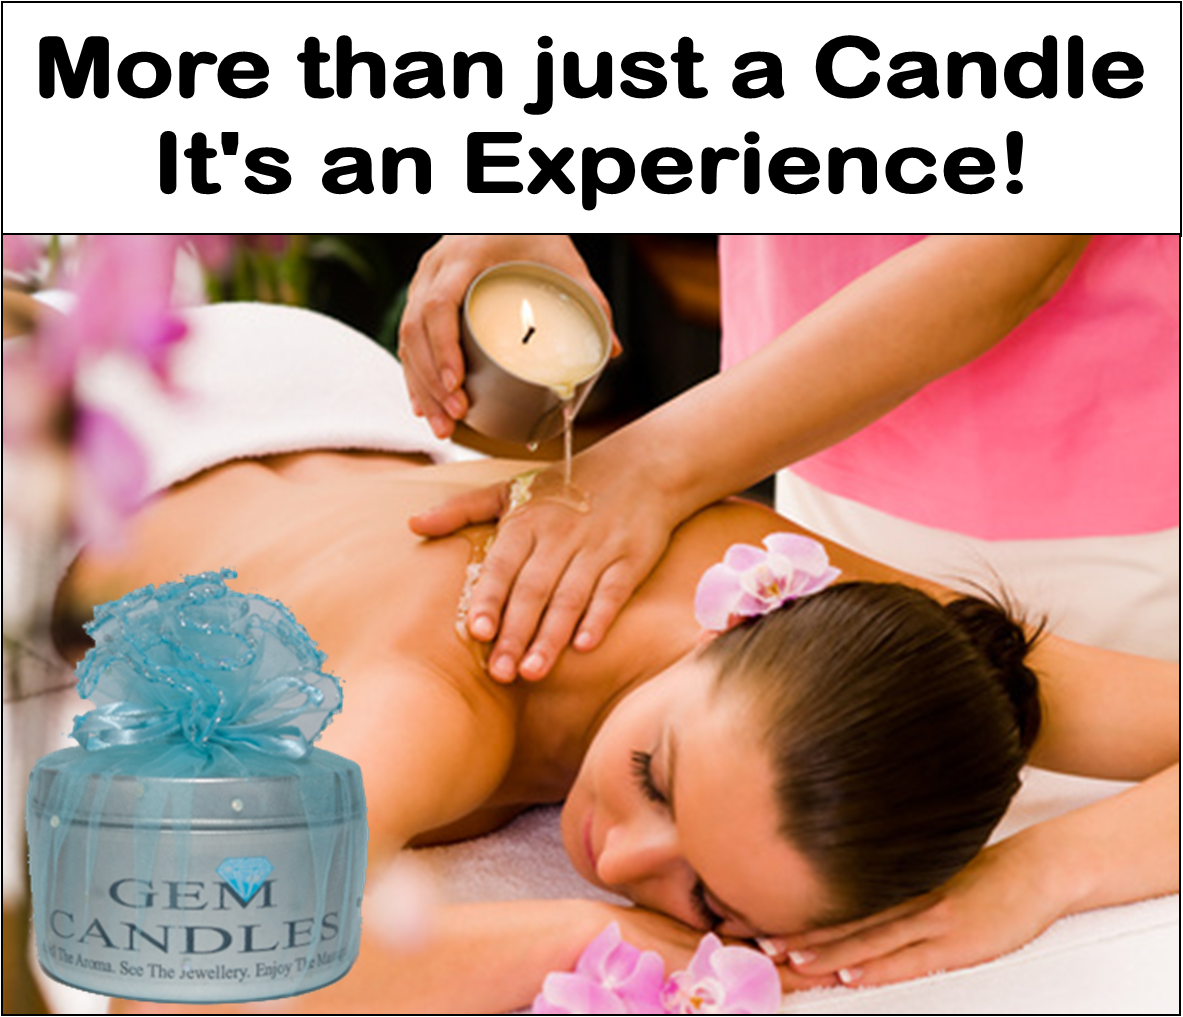 Massage Jewellery In a Candle - Sex On The Beach